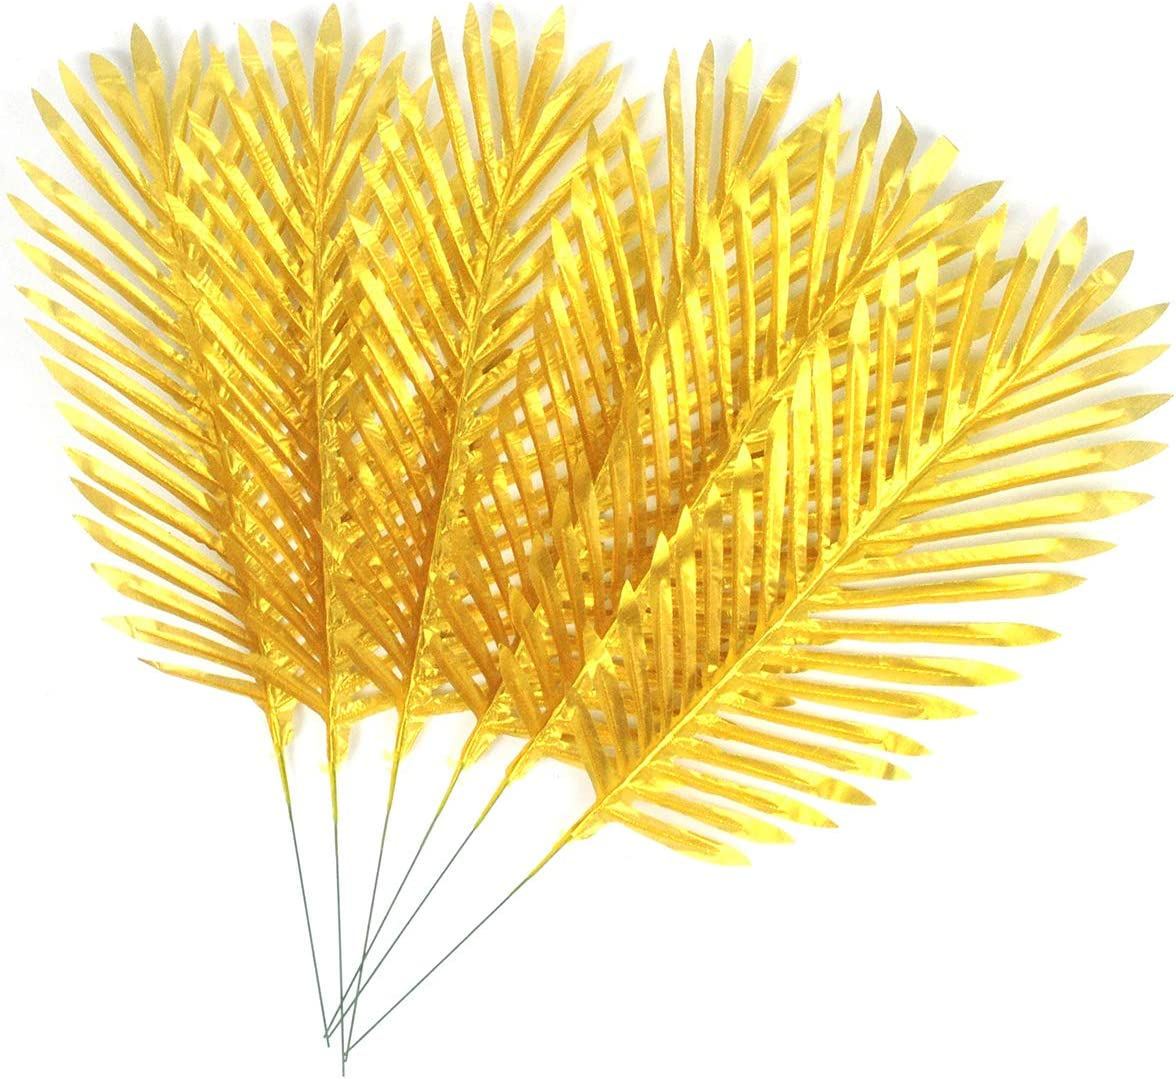 Amazon Com Golden Palm Fronds Tropical Palm Leaves Palm Tree Leaves Artificial For Wedding Party Decoration 27 2 Gold Palm Leaves Home Kitchen Tropical leaves and gold flowers seamless beige vector. golden palm fronds tropical palm leaves palm tree leaves artificial for wedding party decoration 27 2 gold palm leaves